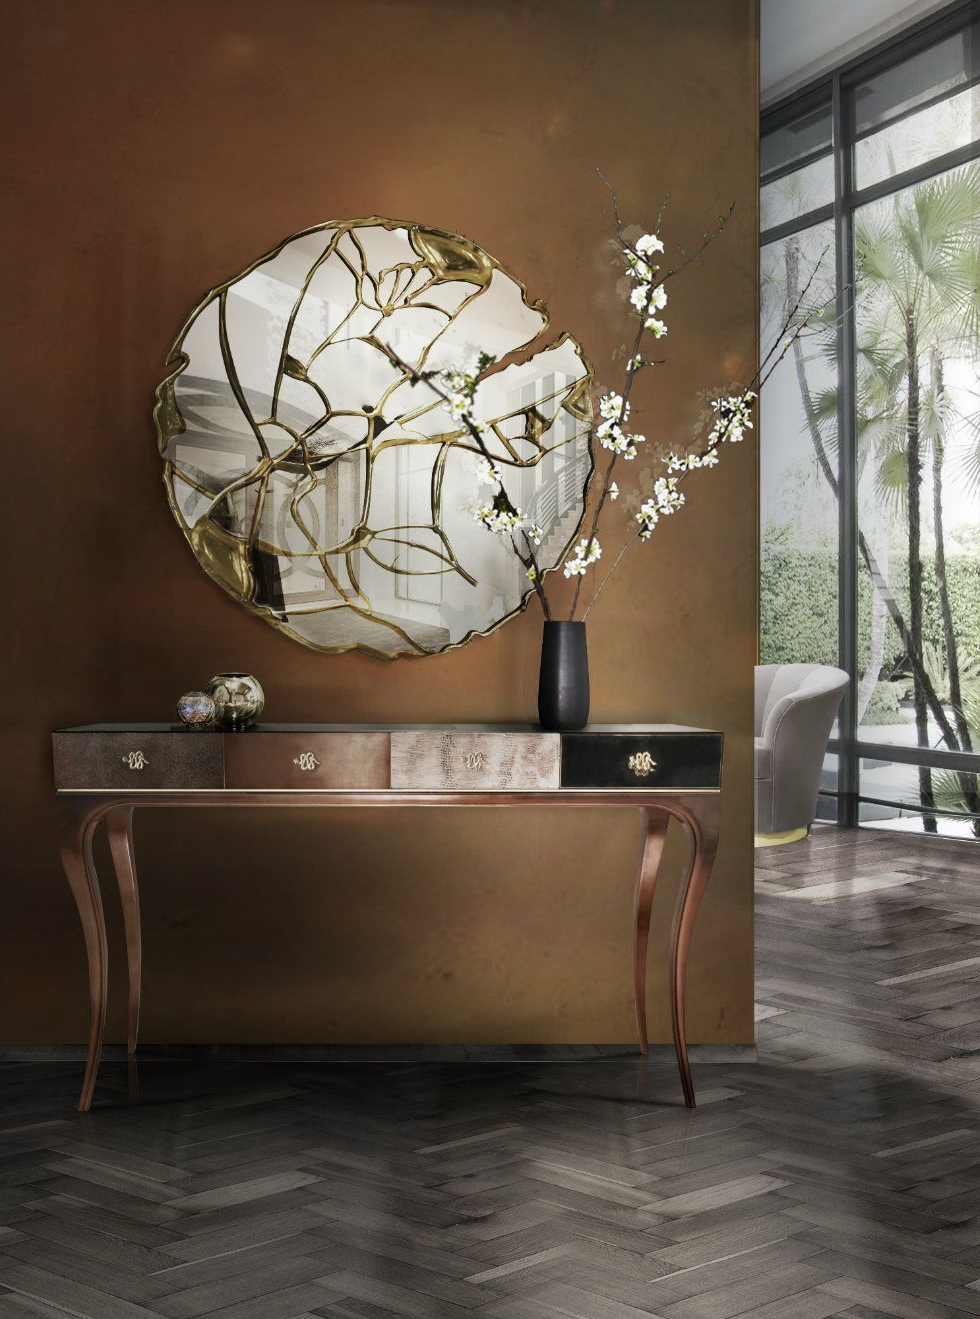 The Most Beautiful Wall Mirror Designs For Your Living Room With Regard To Recent Pretty Wall Mirrors (View 9 of 20)